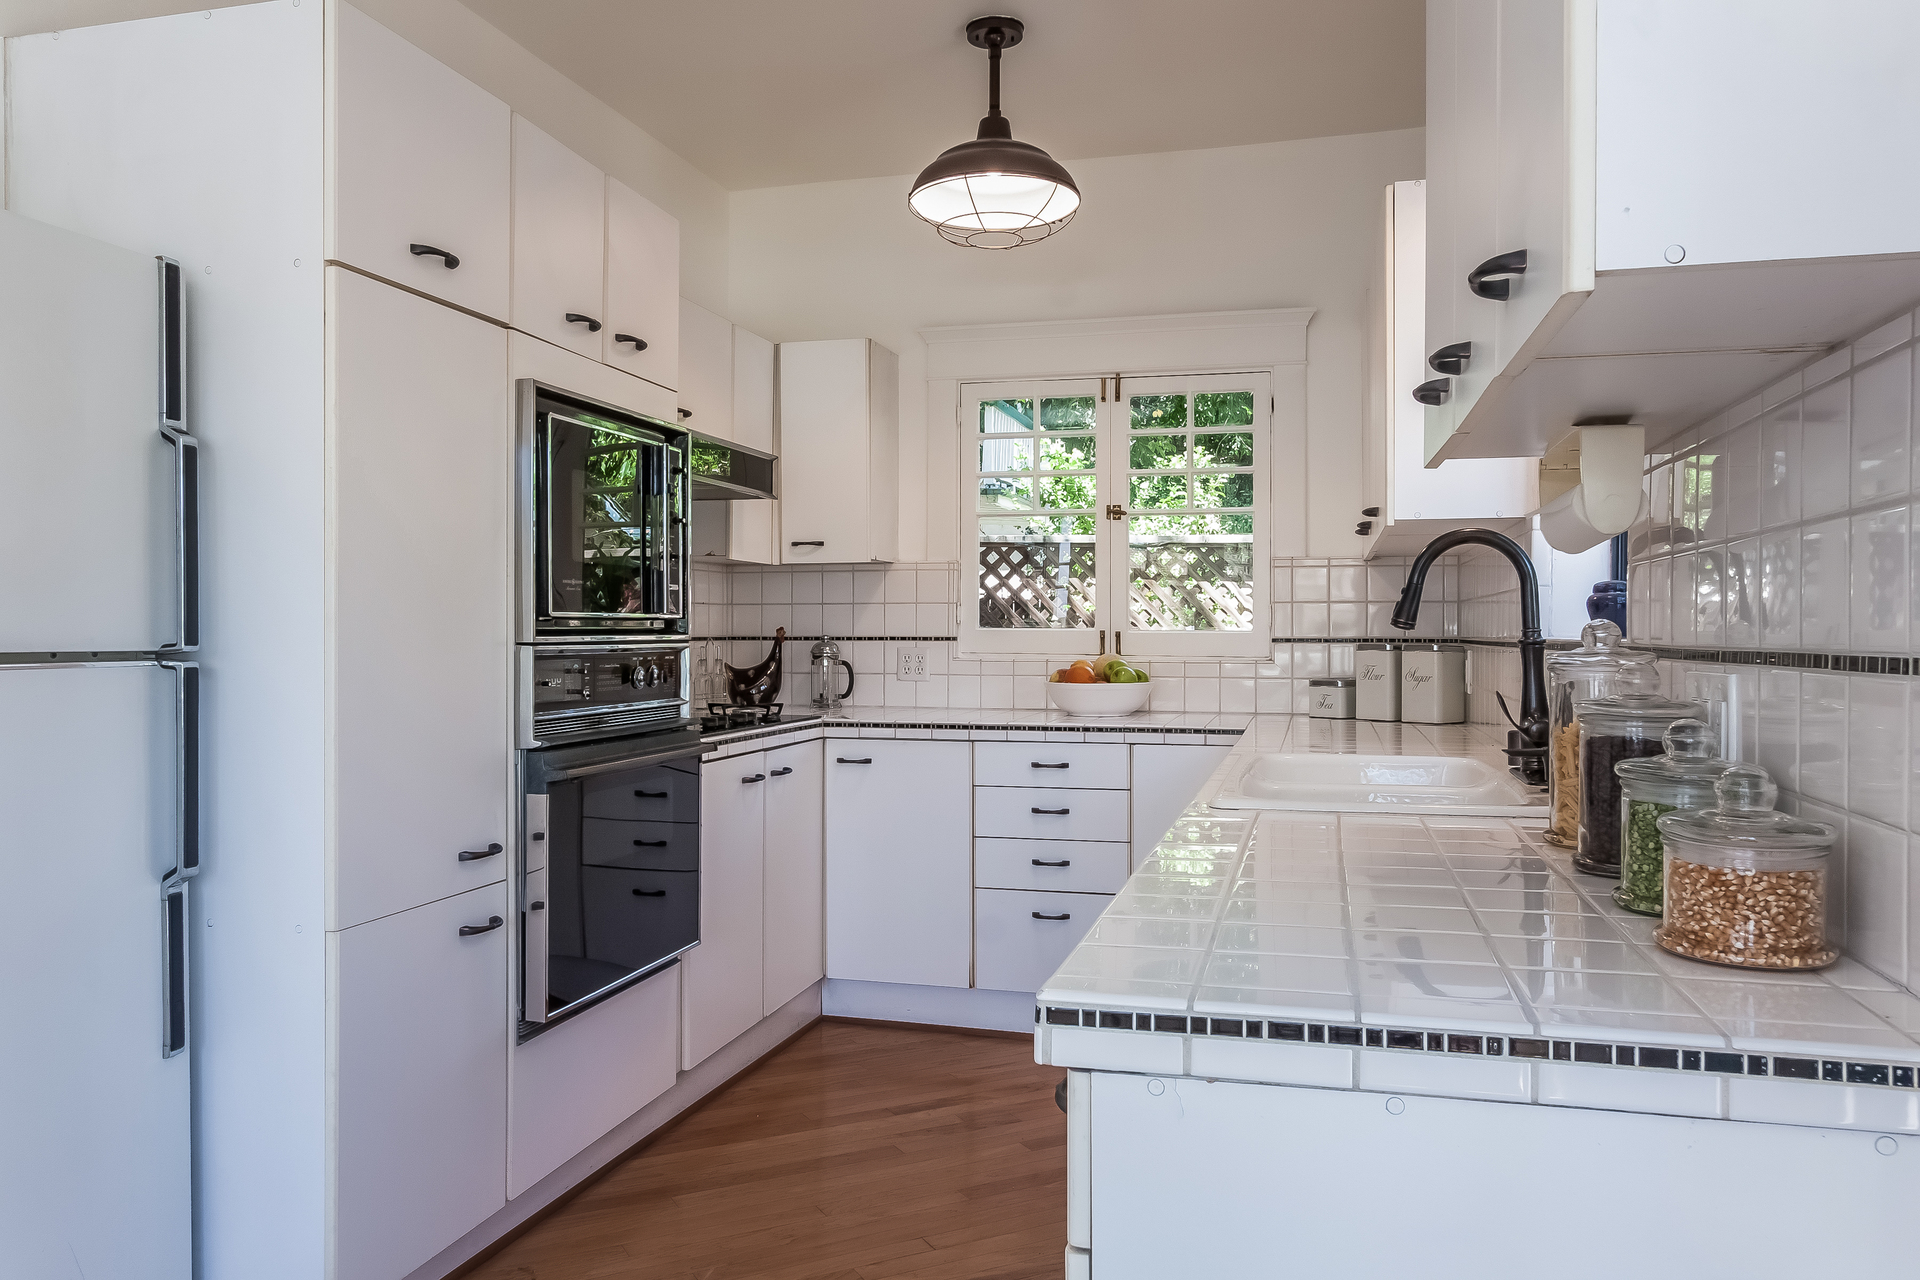 010-Kitchen-1926866-medium.jpg